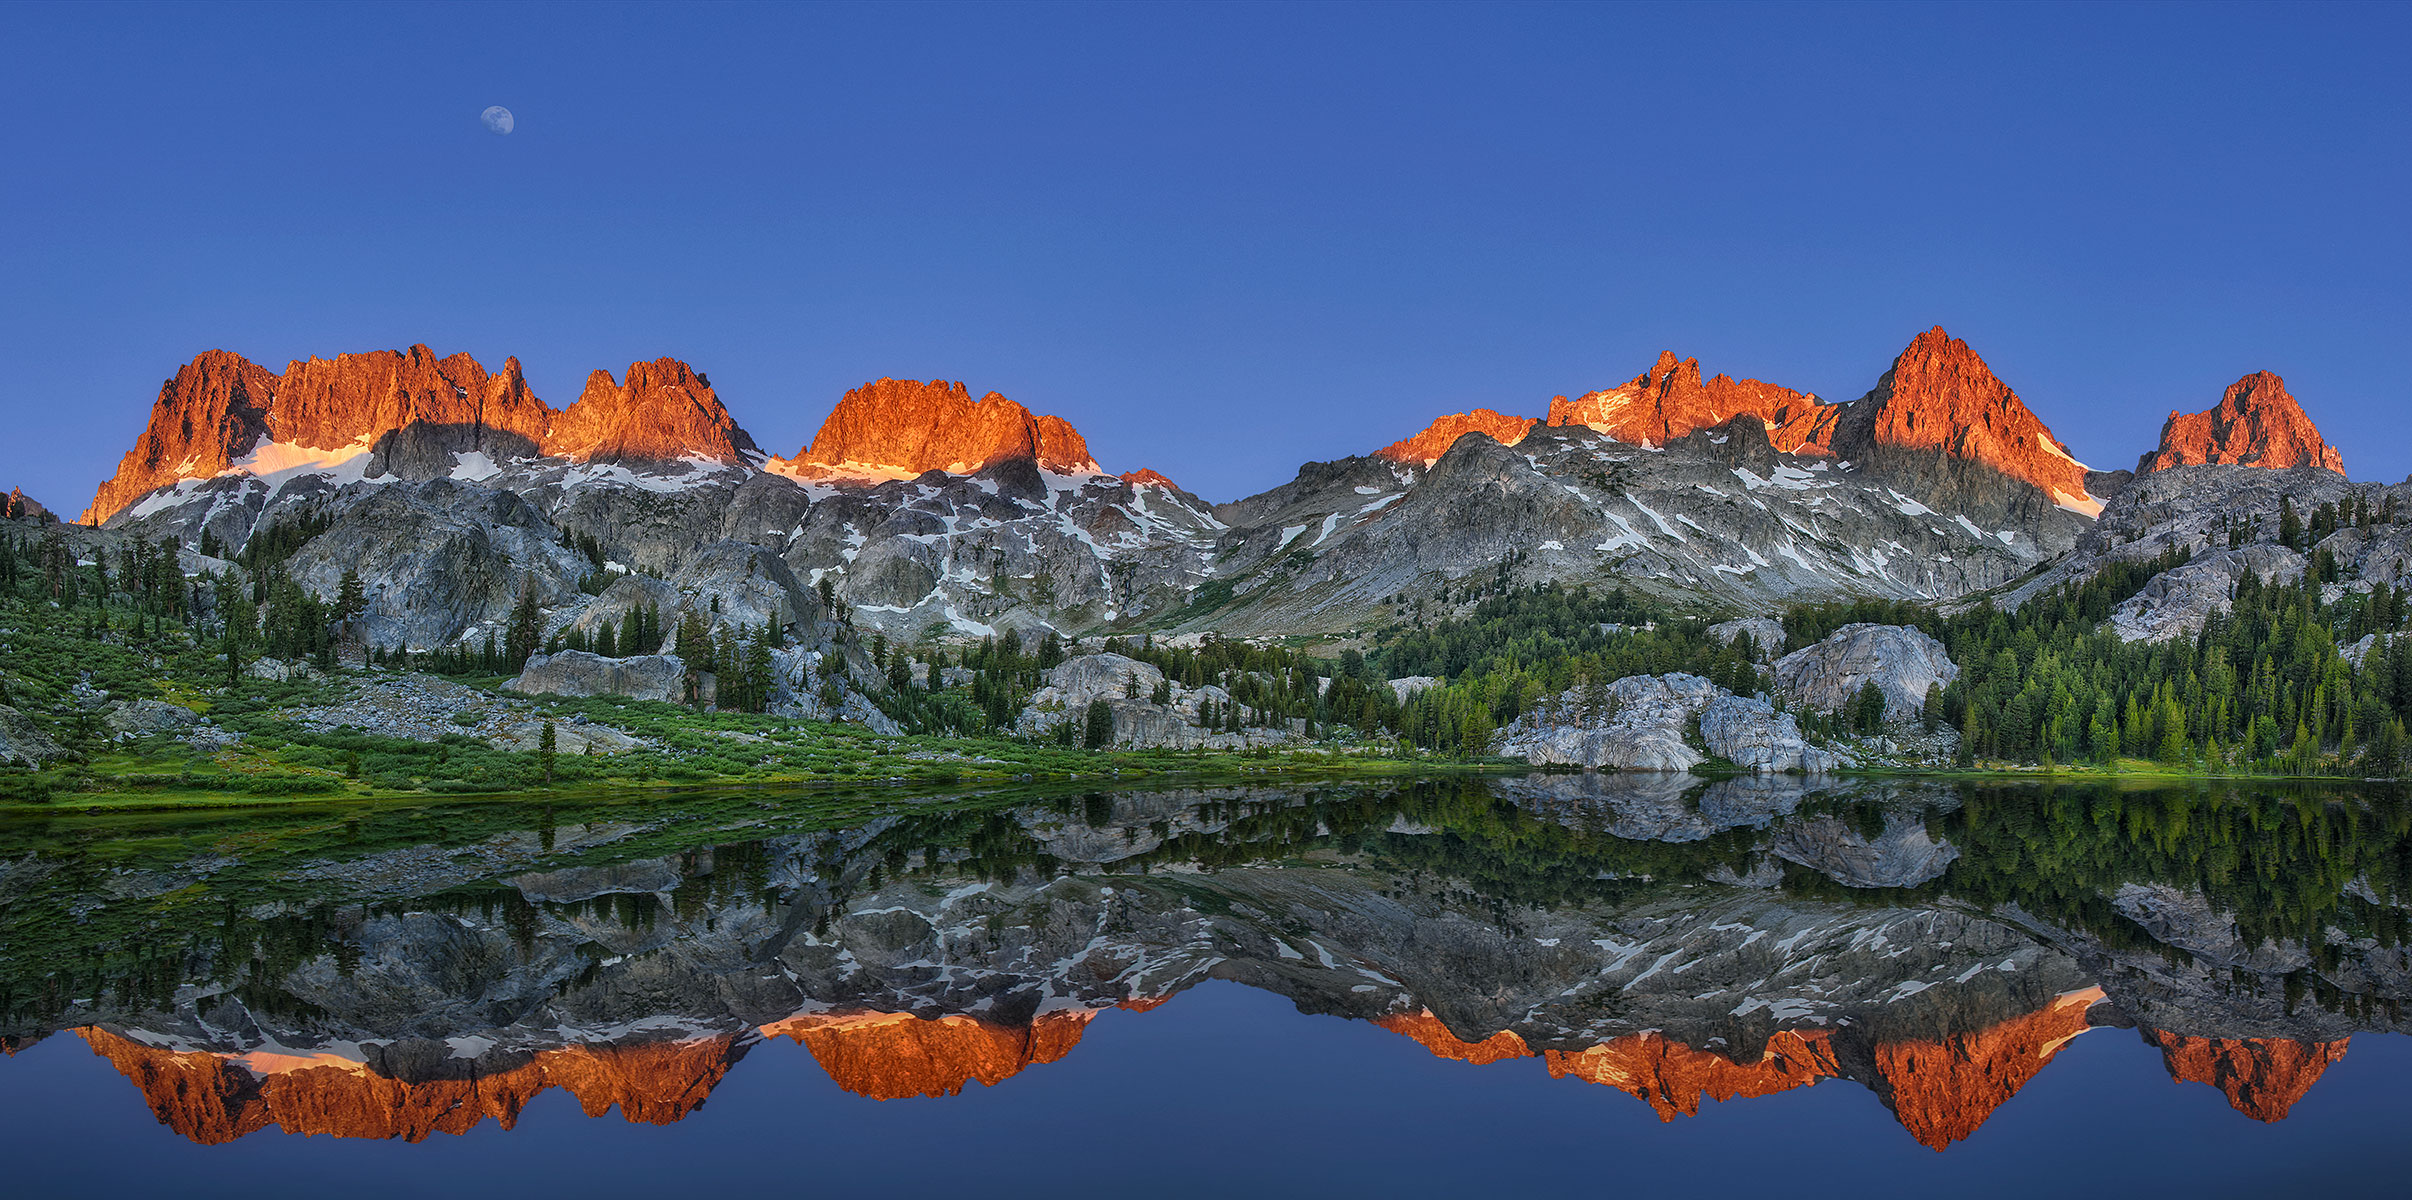 TRAVELOGRAPHY-ANSEL-ADAMS-WILDERNESS-0213-1FINAL